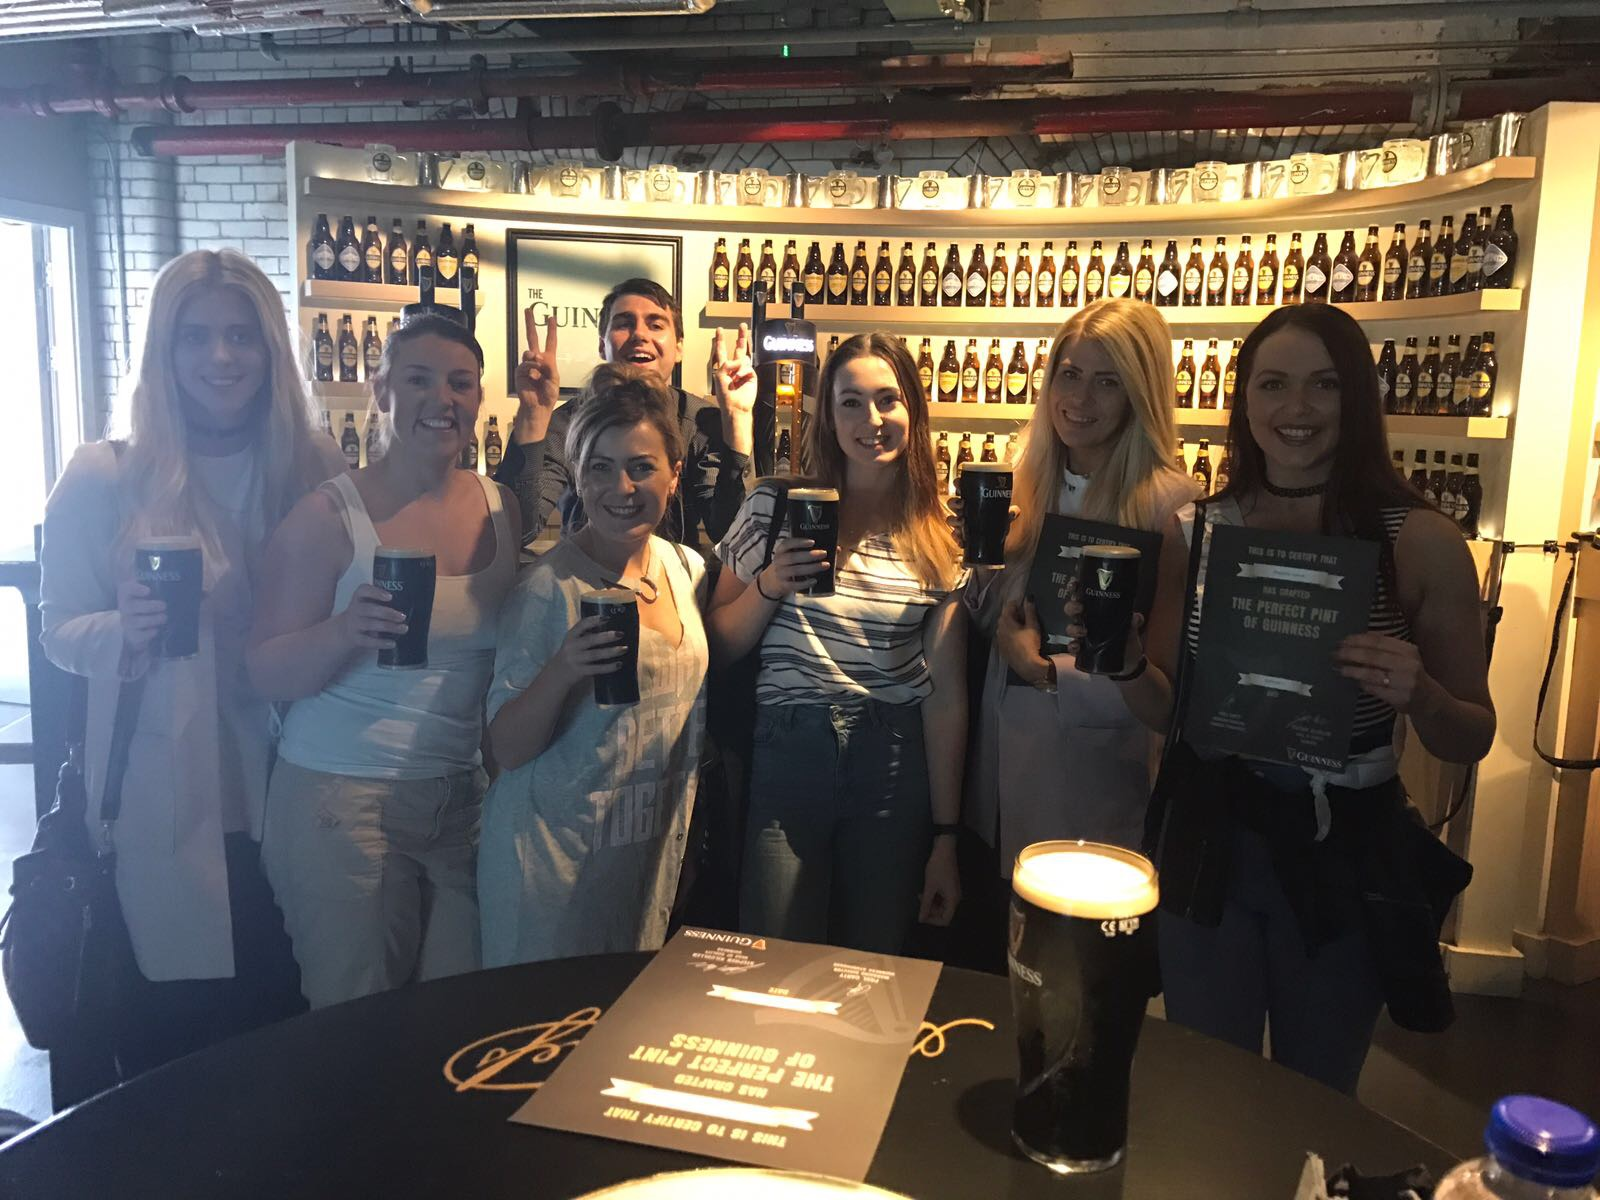 Guinness Storehouse pulling pints - Dublin